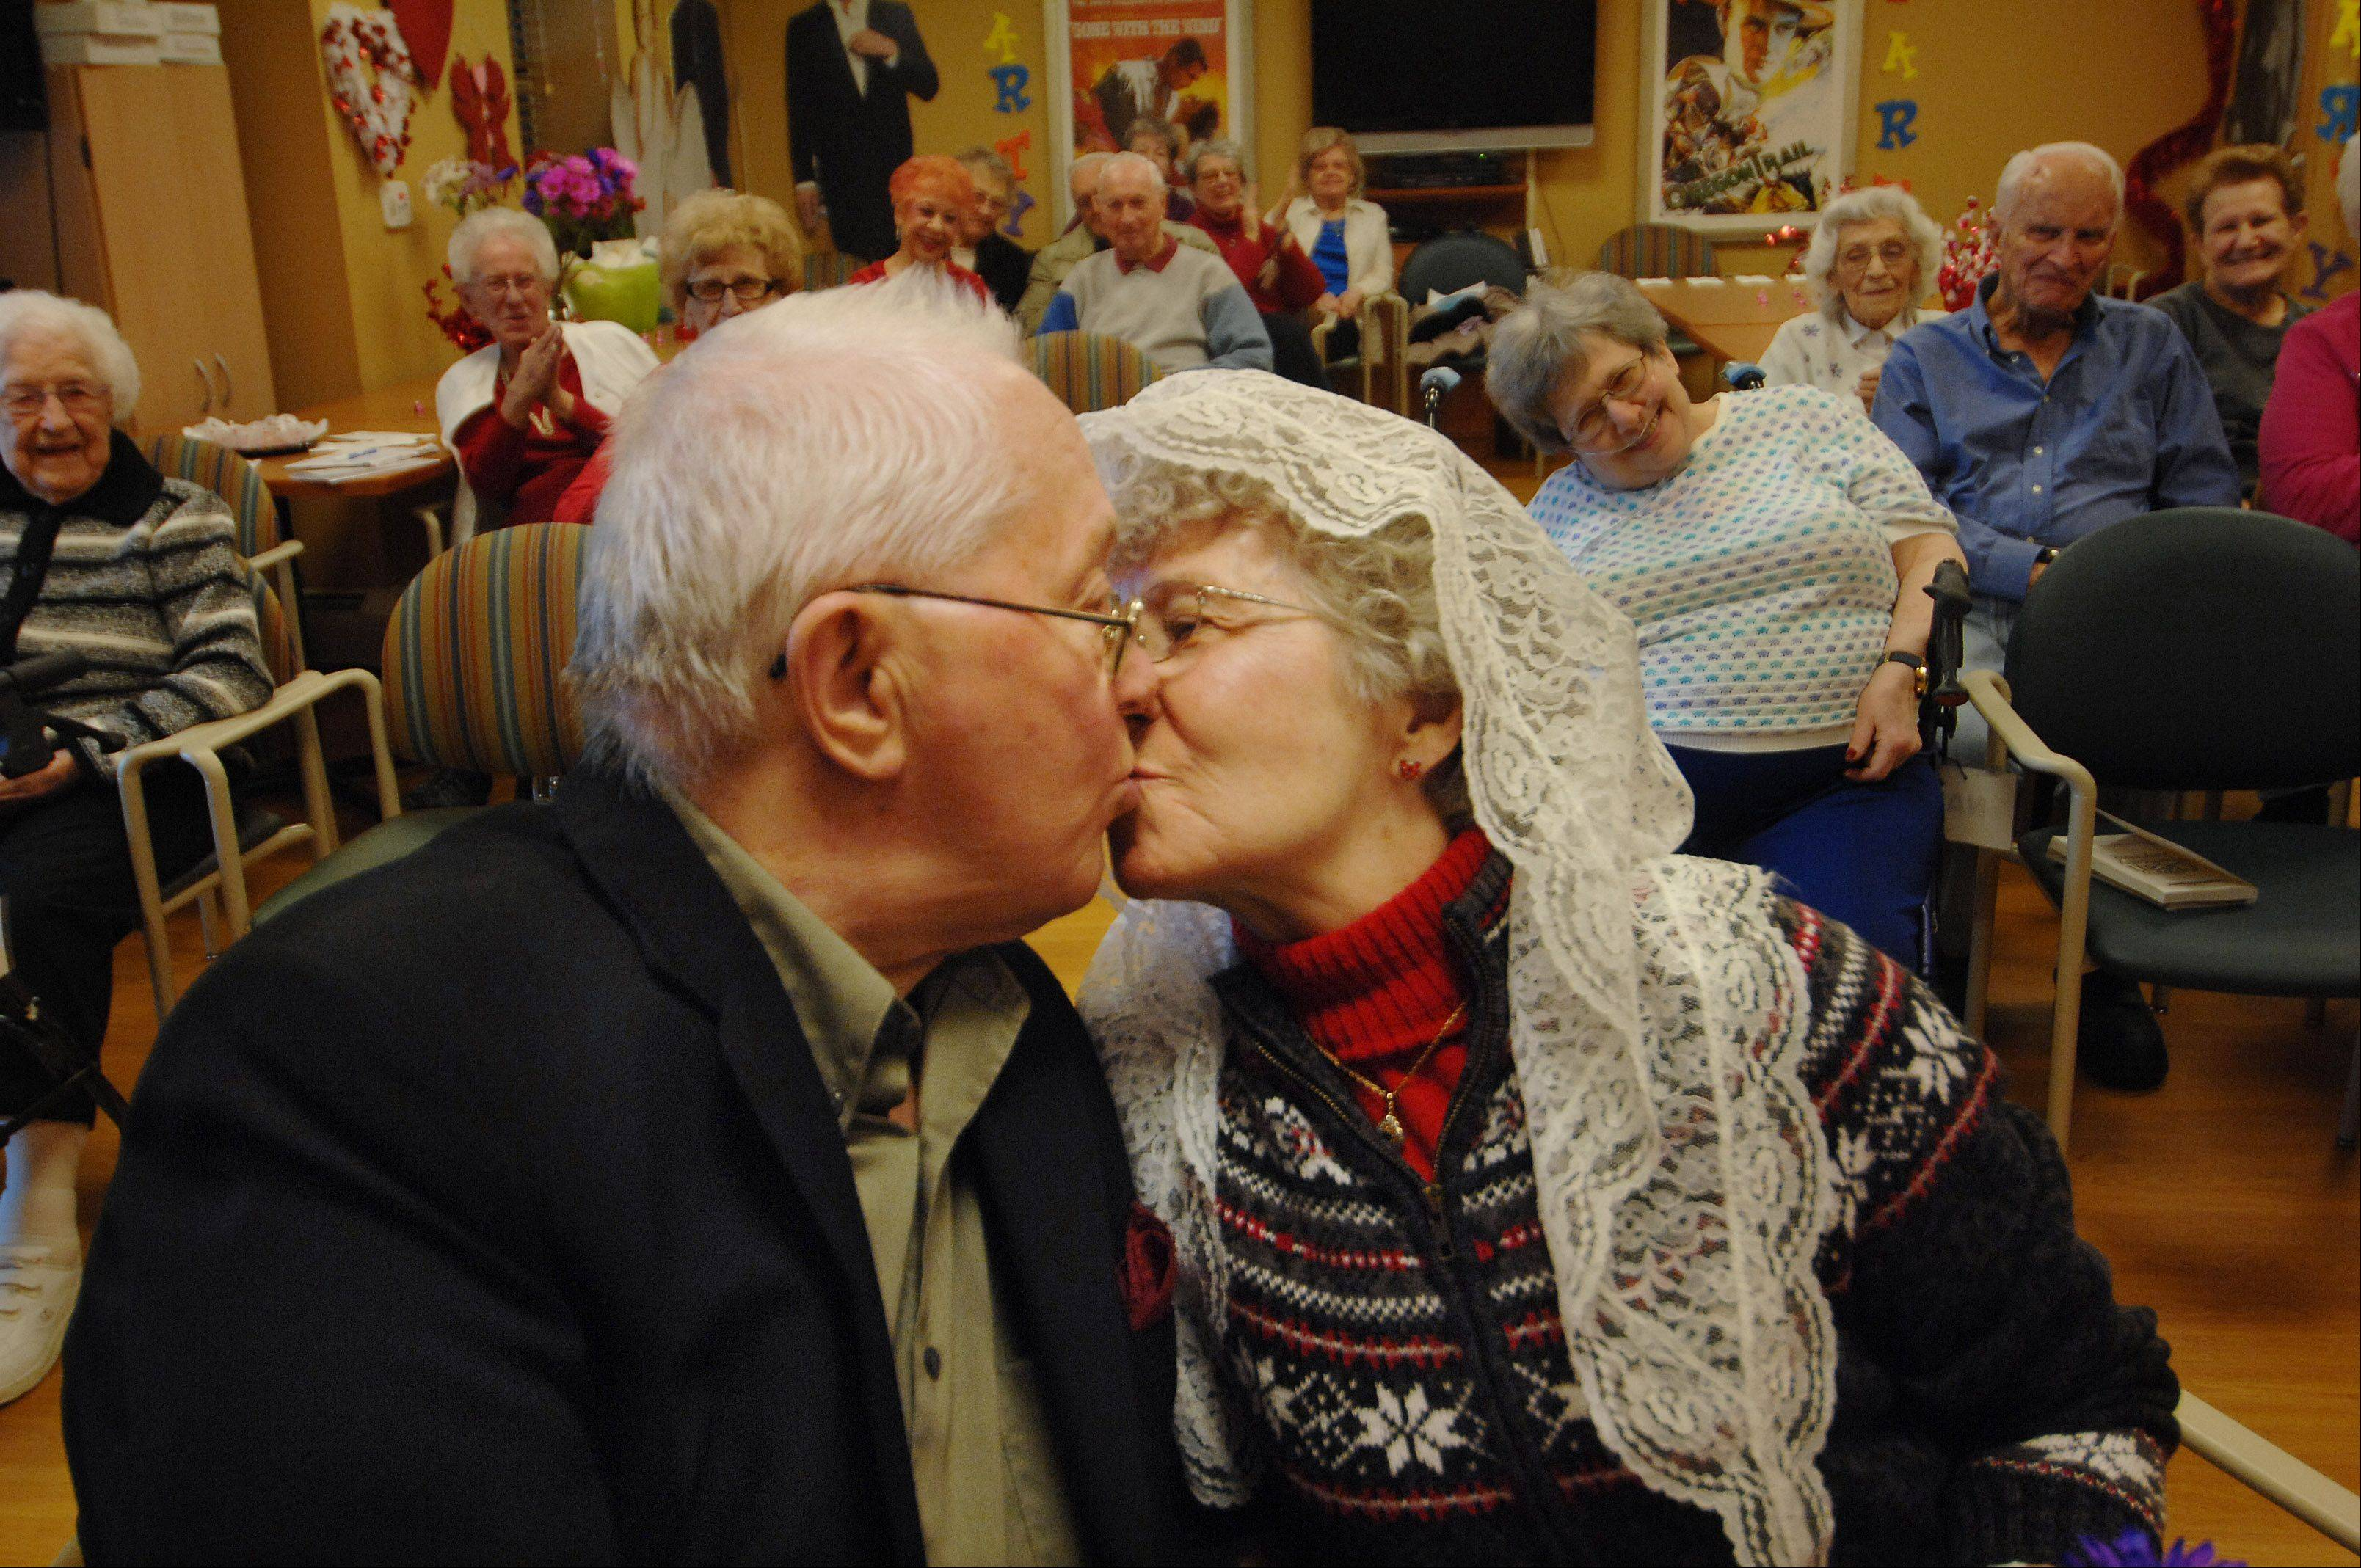 Art and Helen Polich kiss to seal their vows Tuesday at the Victory Centre of Barlett. The couple first married on April 15, 1950, and now live at the supportive living facility. They renewed their vows after 62 years, on Valentine's Day.